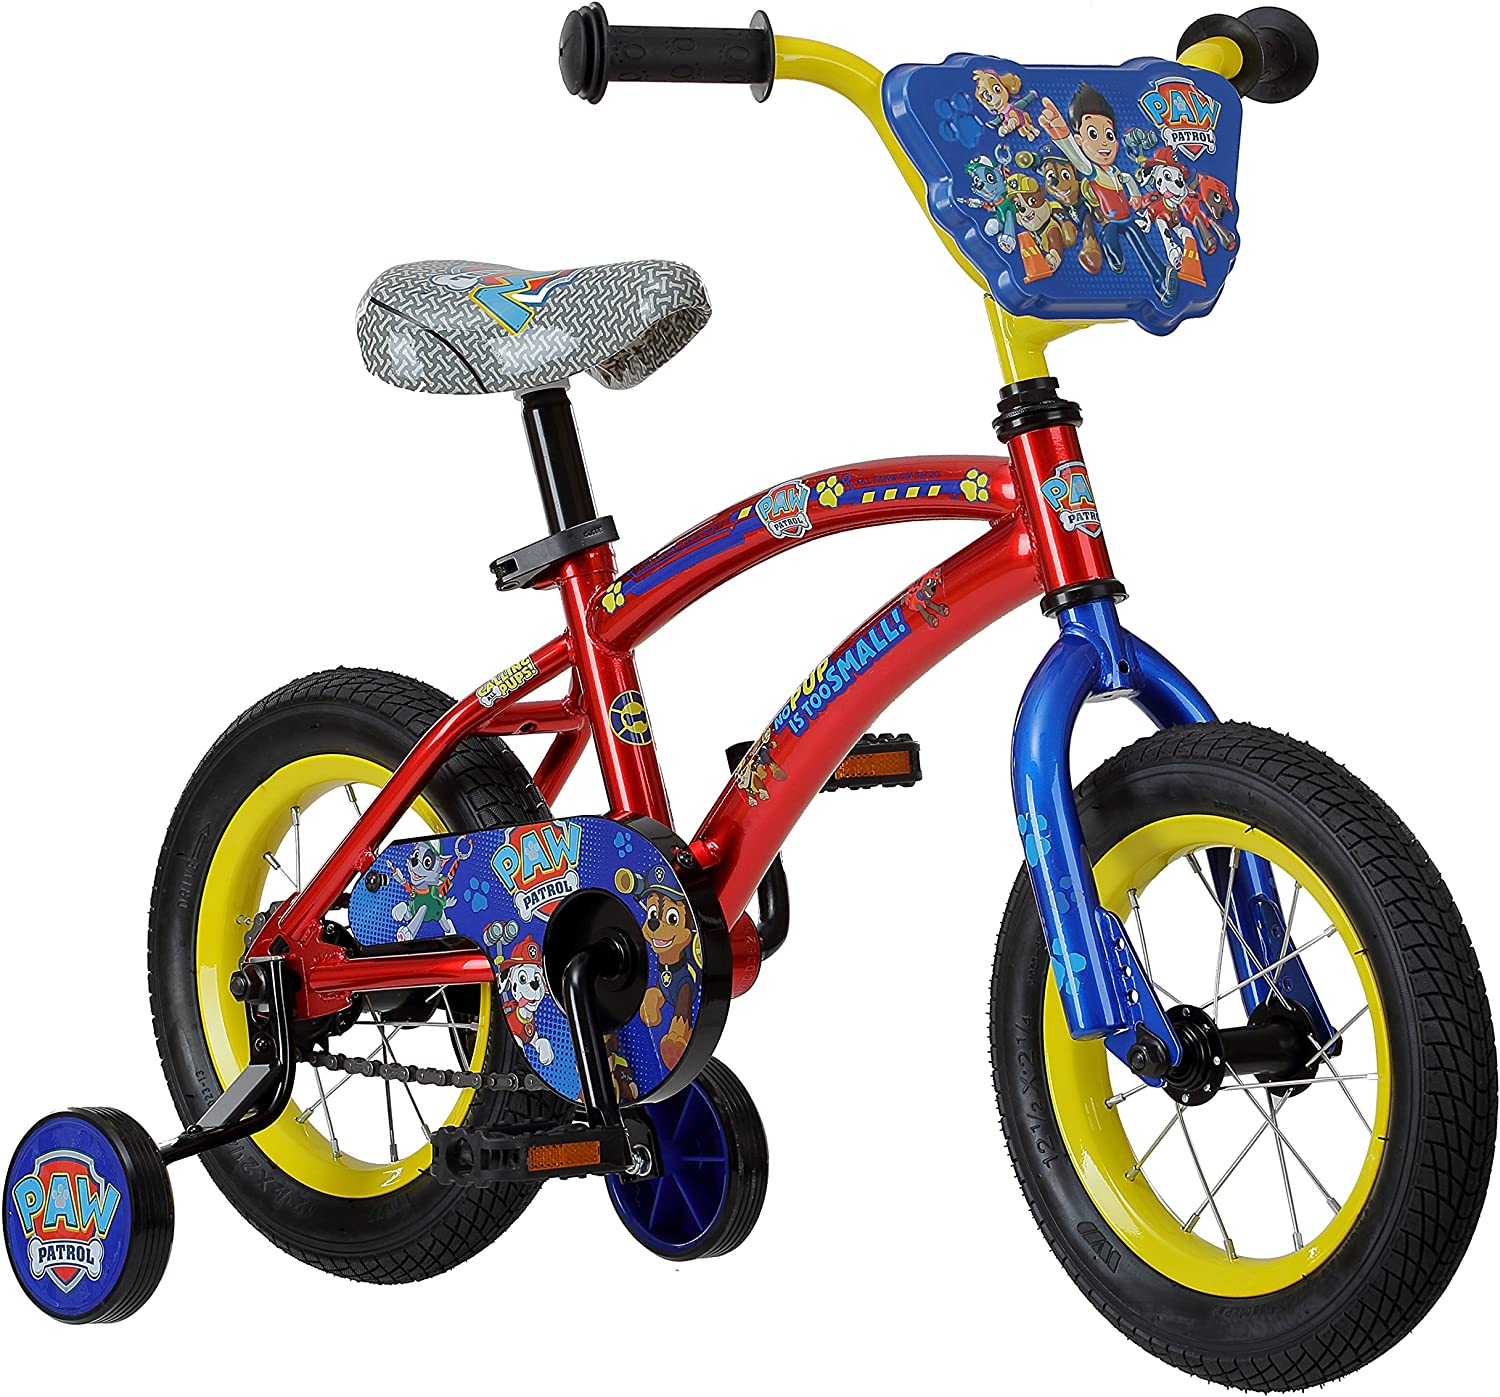 Nickelodeon Paw Patrol Bicycle for Kids